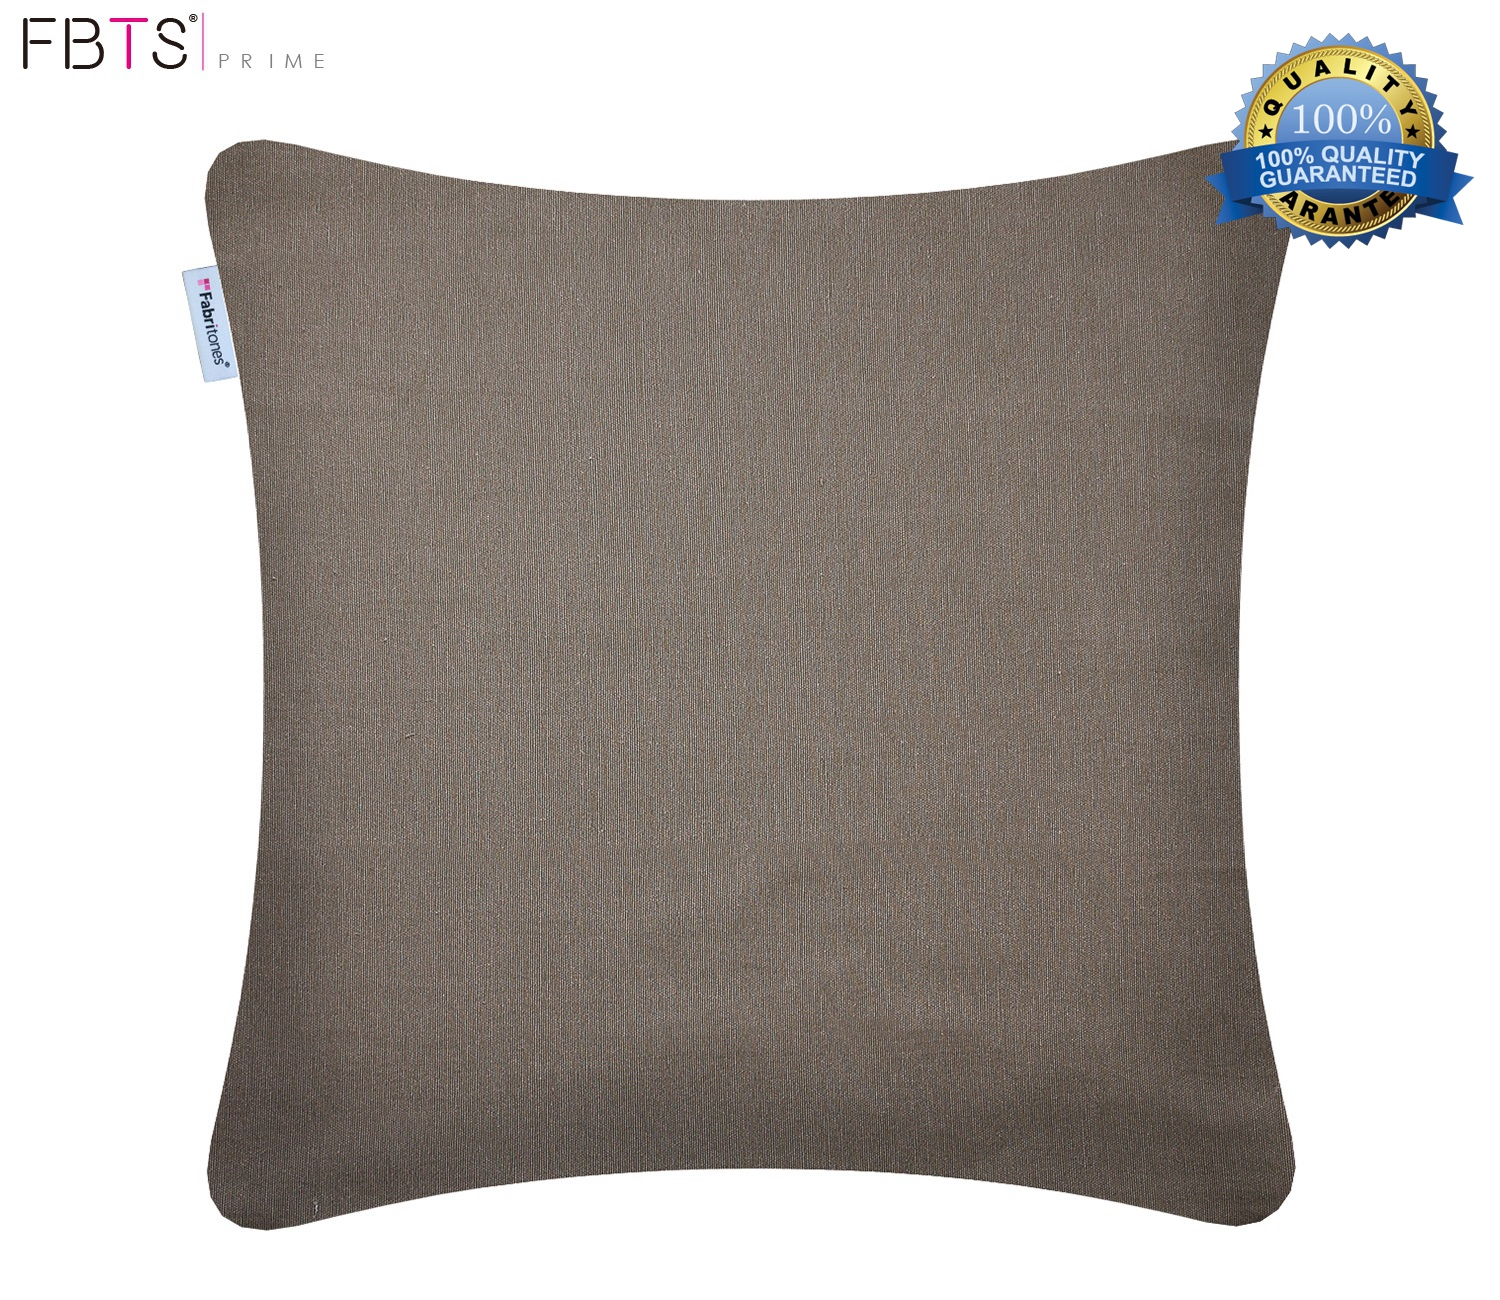 Throw Pillow Covers 18 X 18 Inches Brown Decorative Square